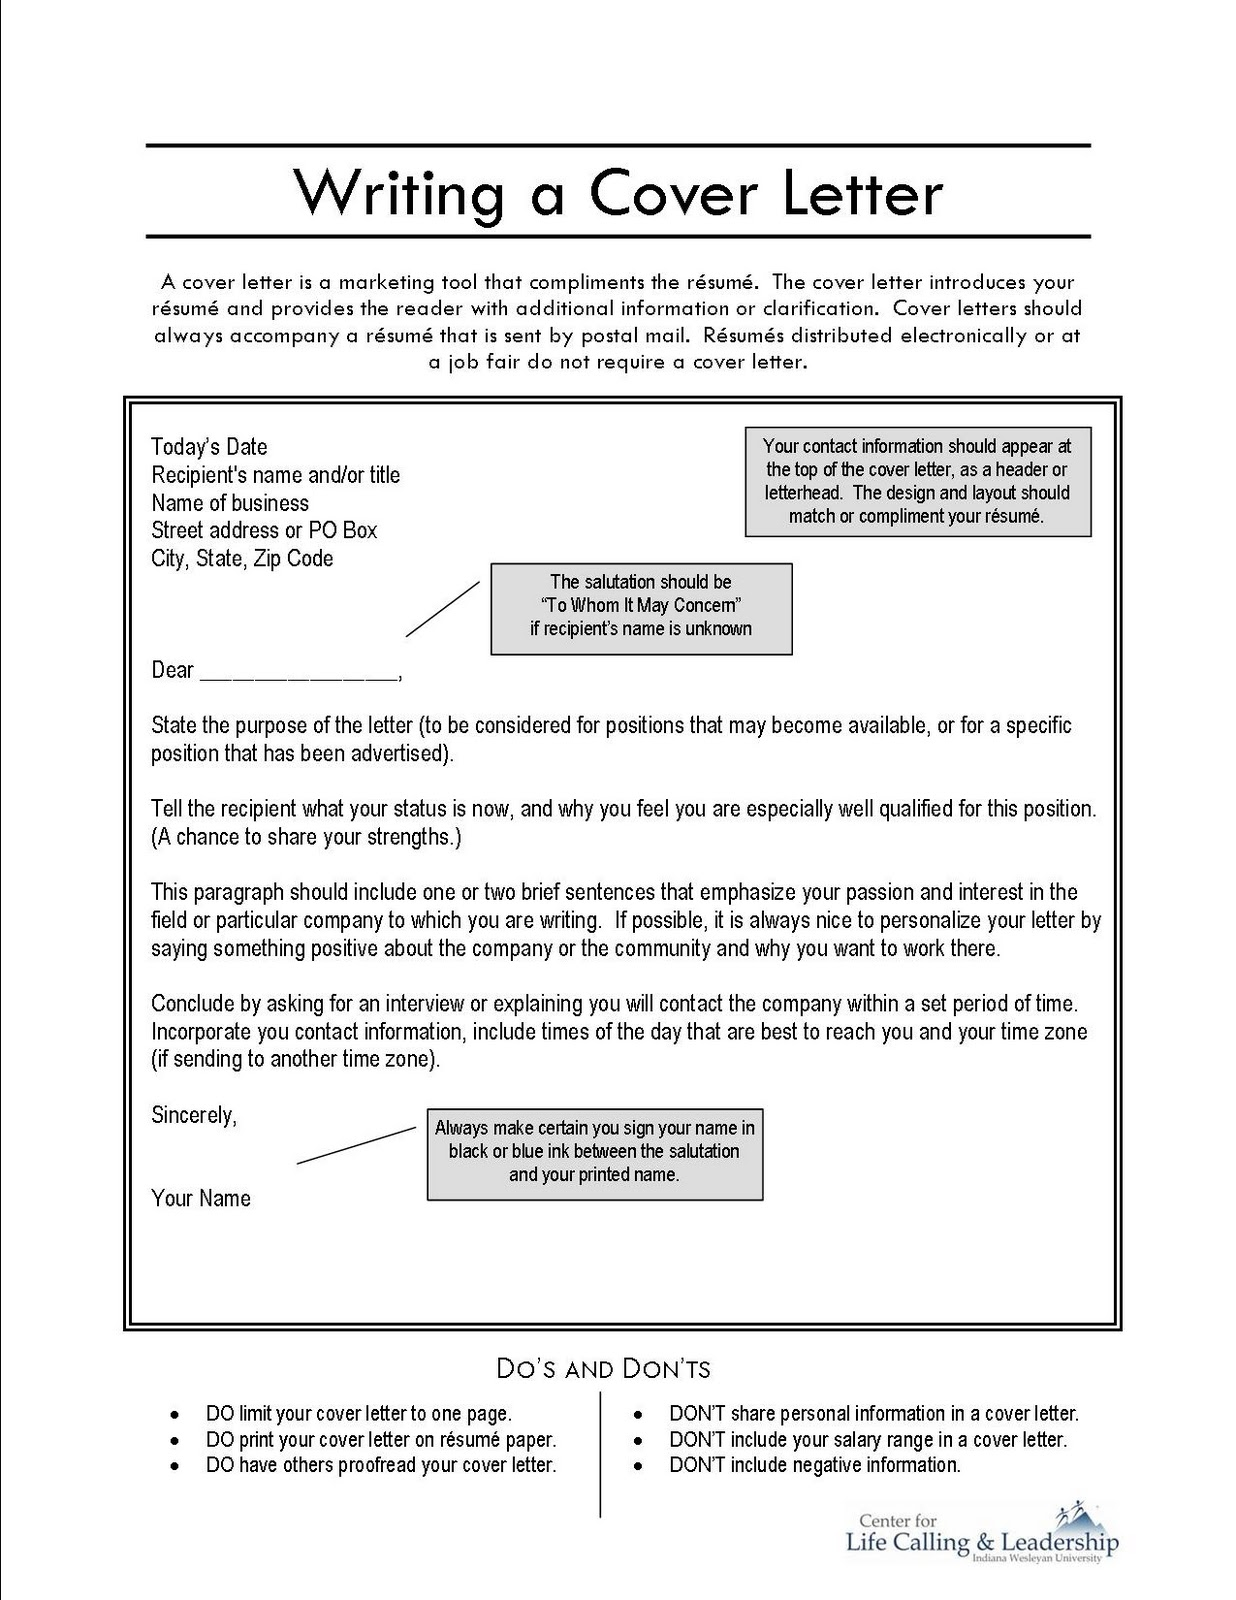 hw to write a cover letter - english advanced level 2 aka na2 formal letter writing